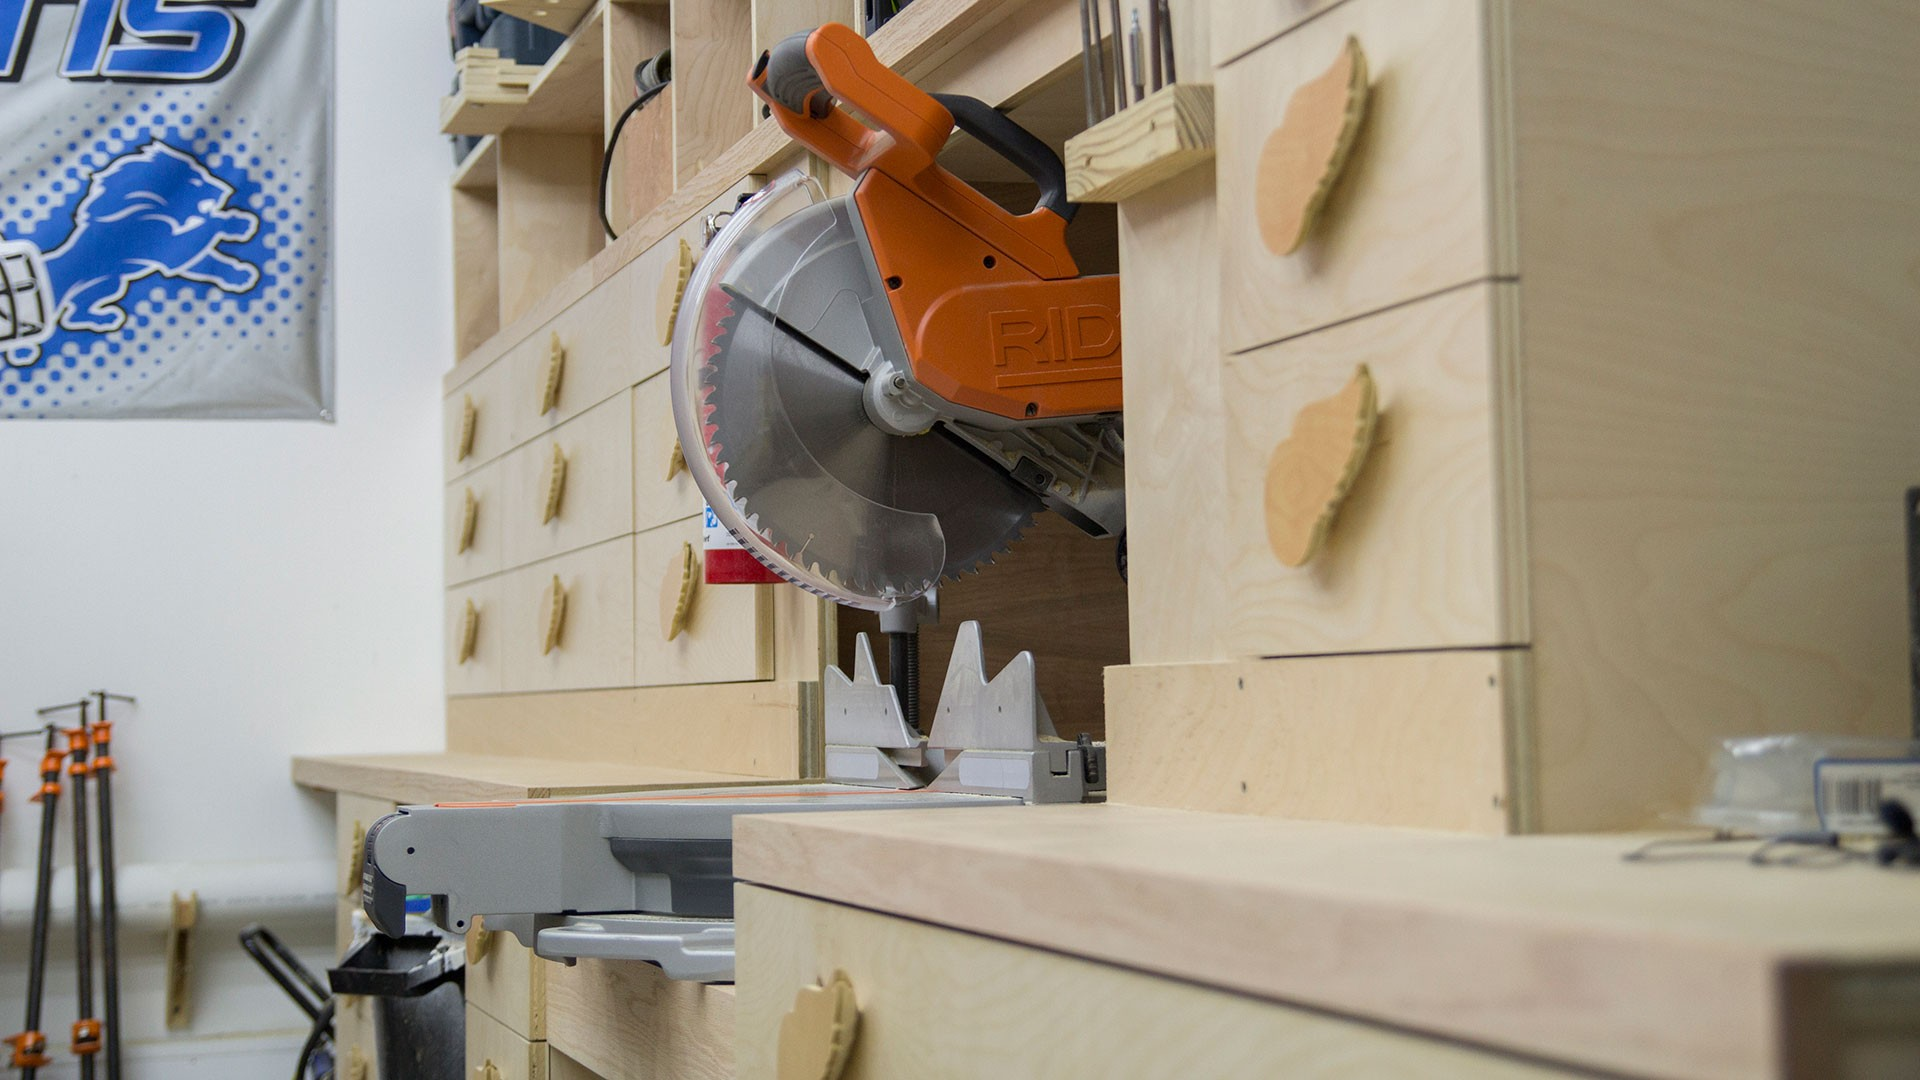 miter saw station storage boxes and drawer fronts (22)